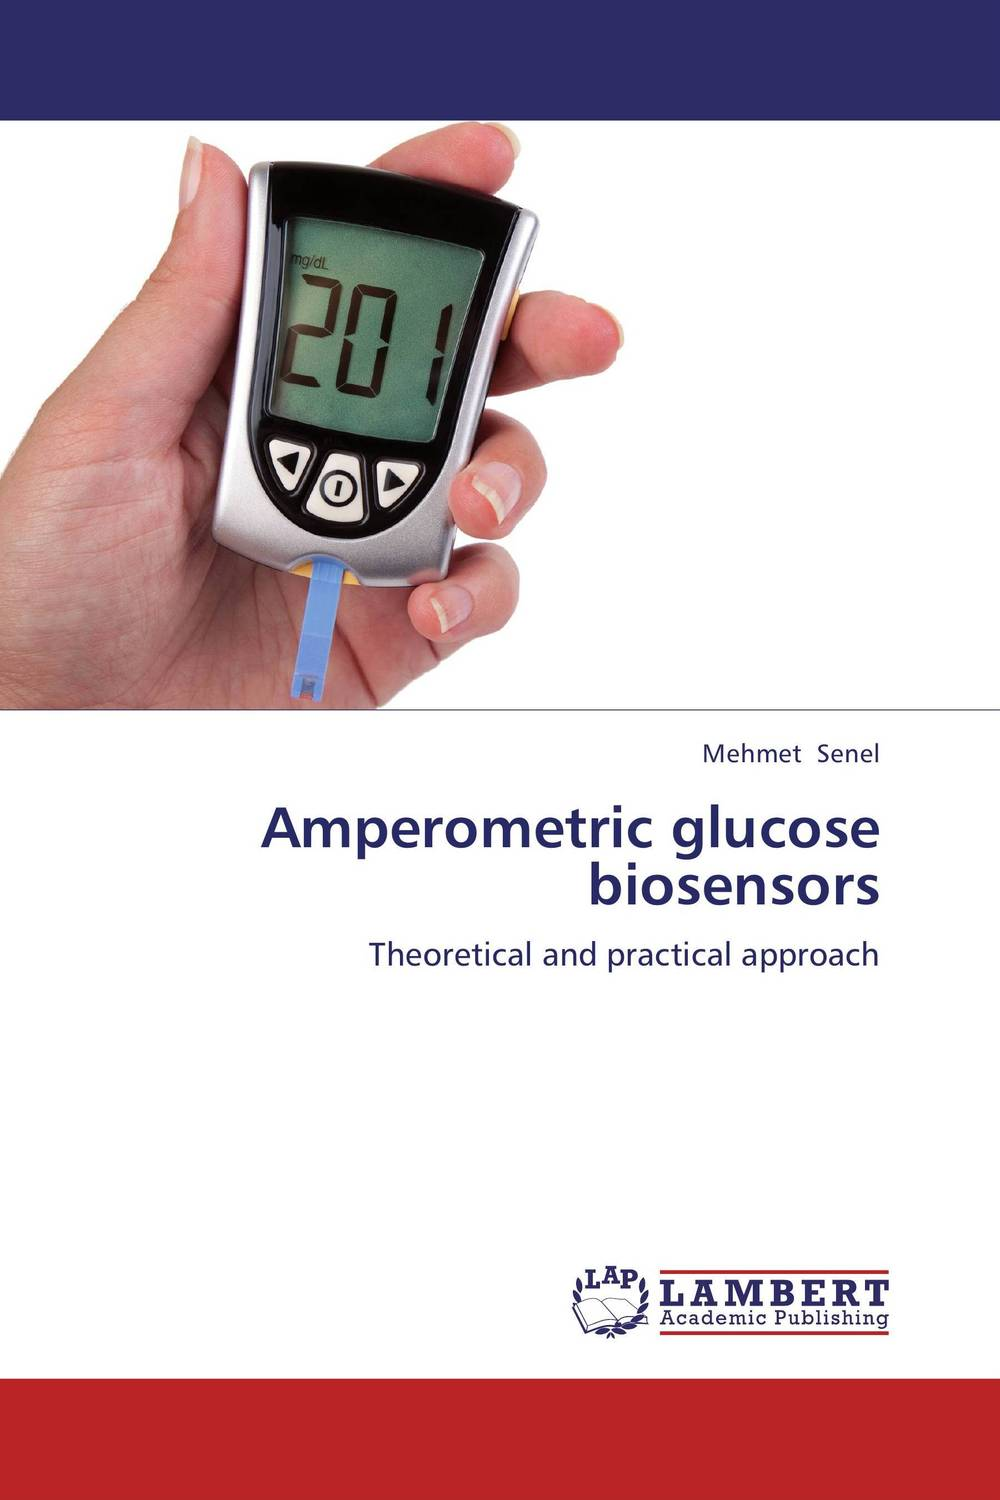 Amperometric glucose biosensors enzyme electrodes for biosensor & biofuel cell applications